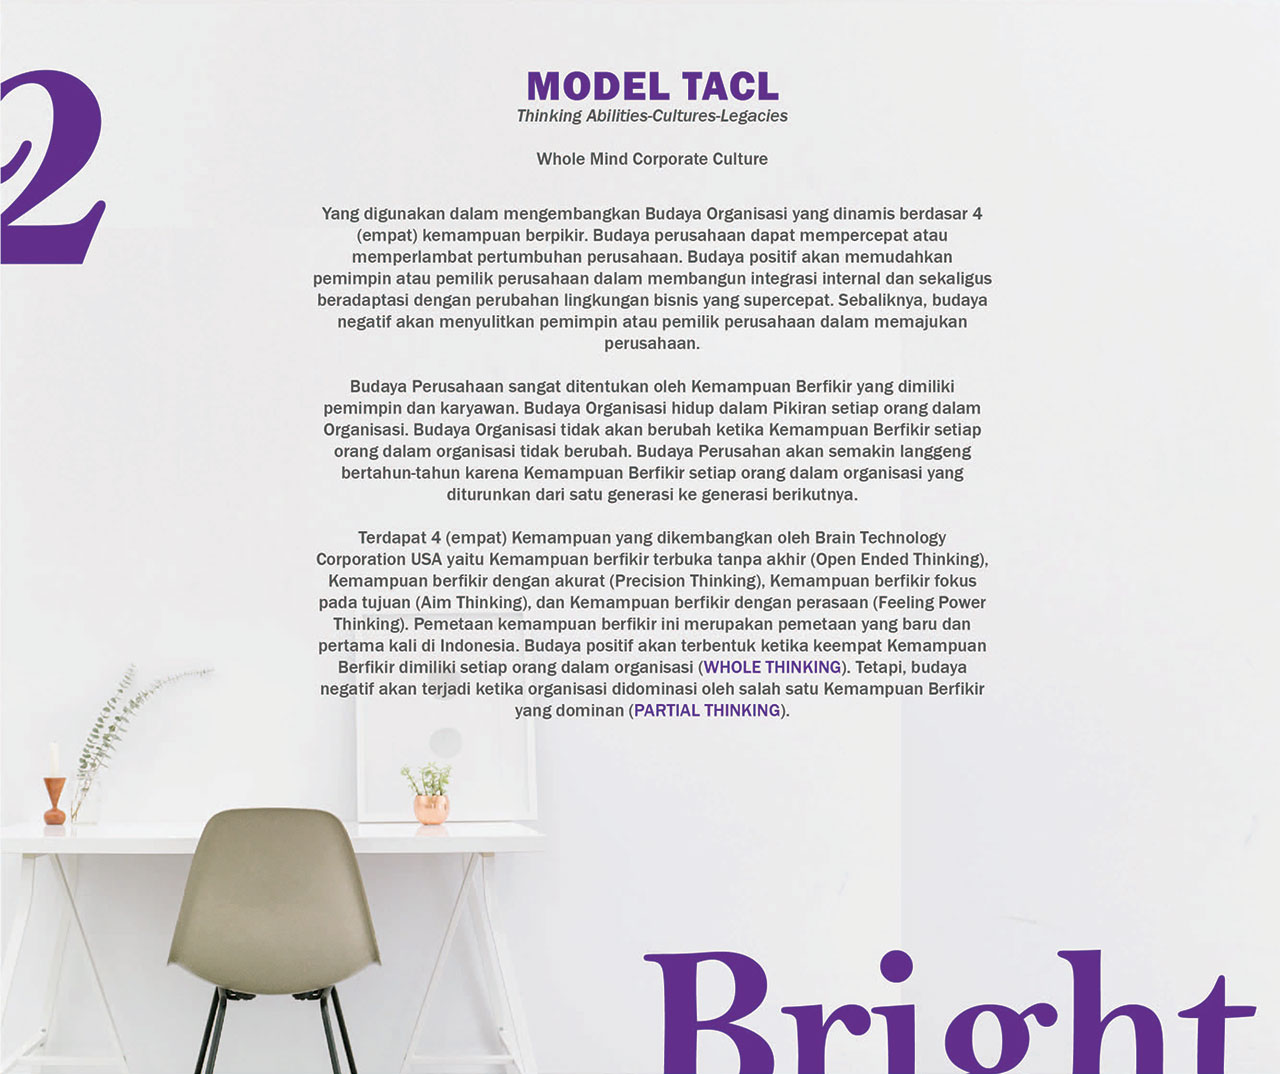 http://businessnumberconsulting.blogspot.co.id/2017/01/bnc-model-tacl.html